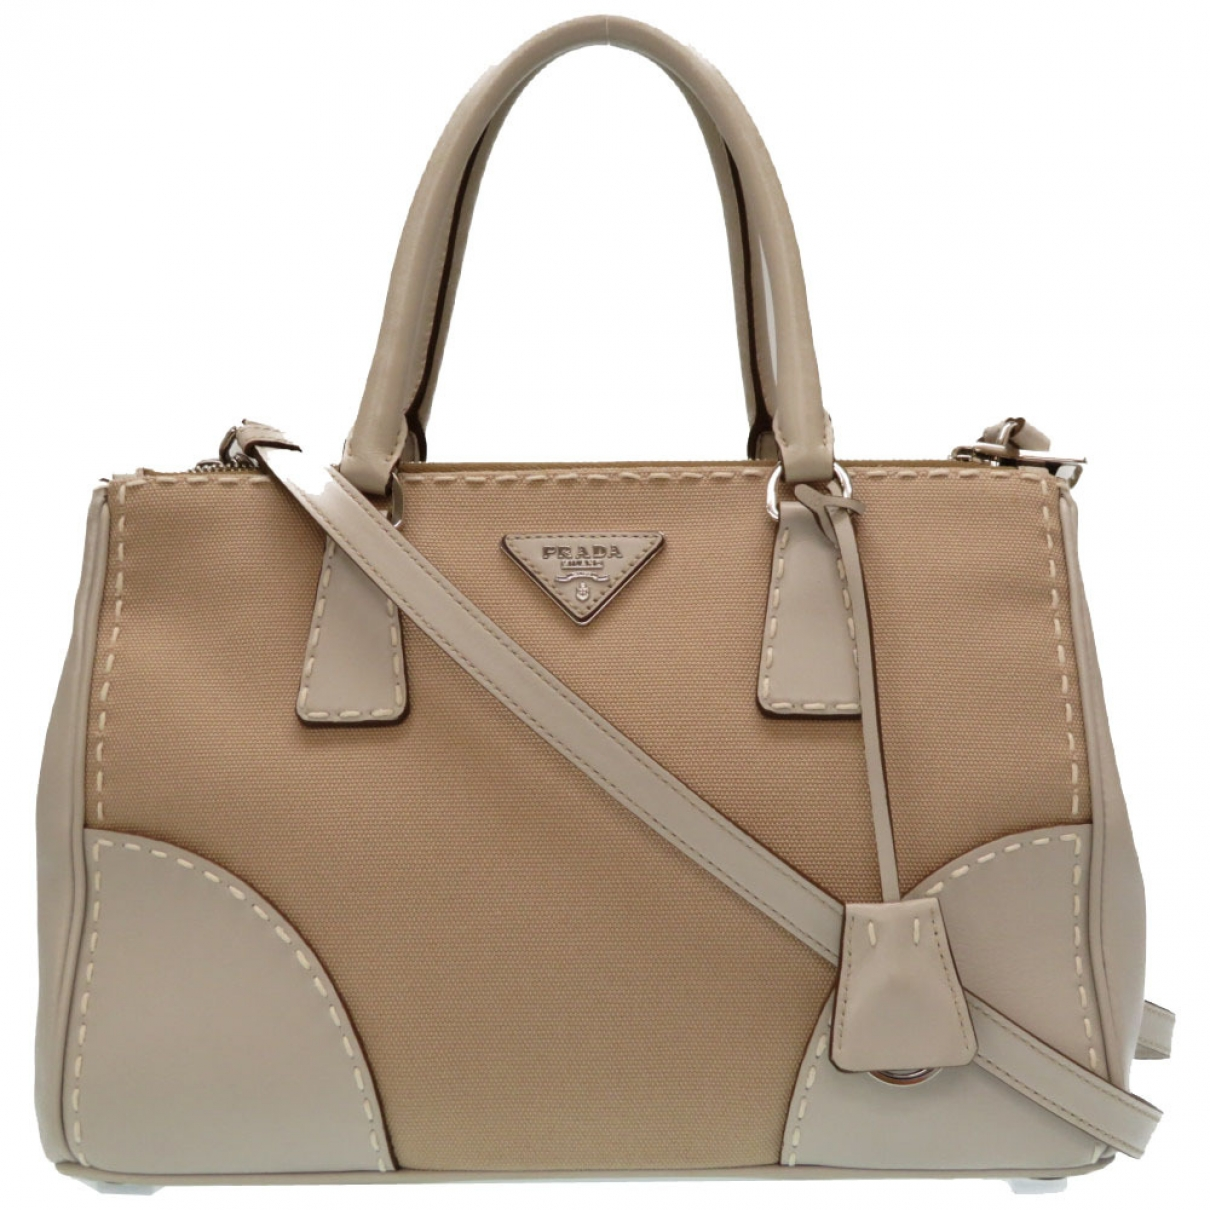 Prada \N Grey Cloth handbag for Women \N